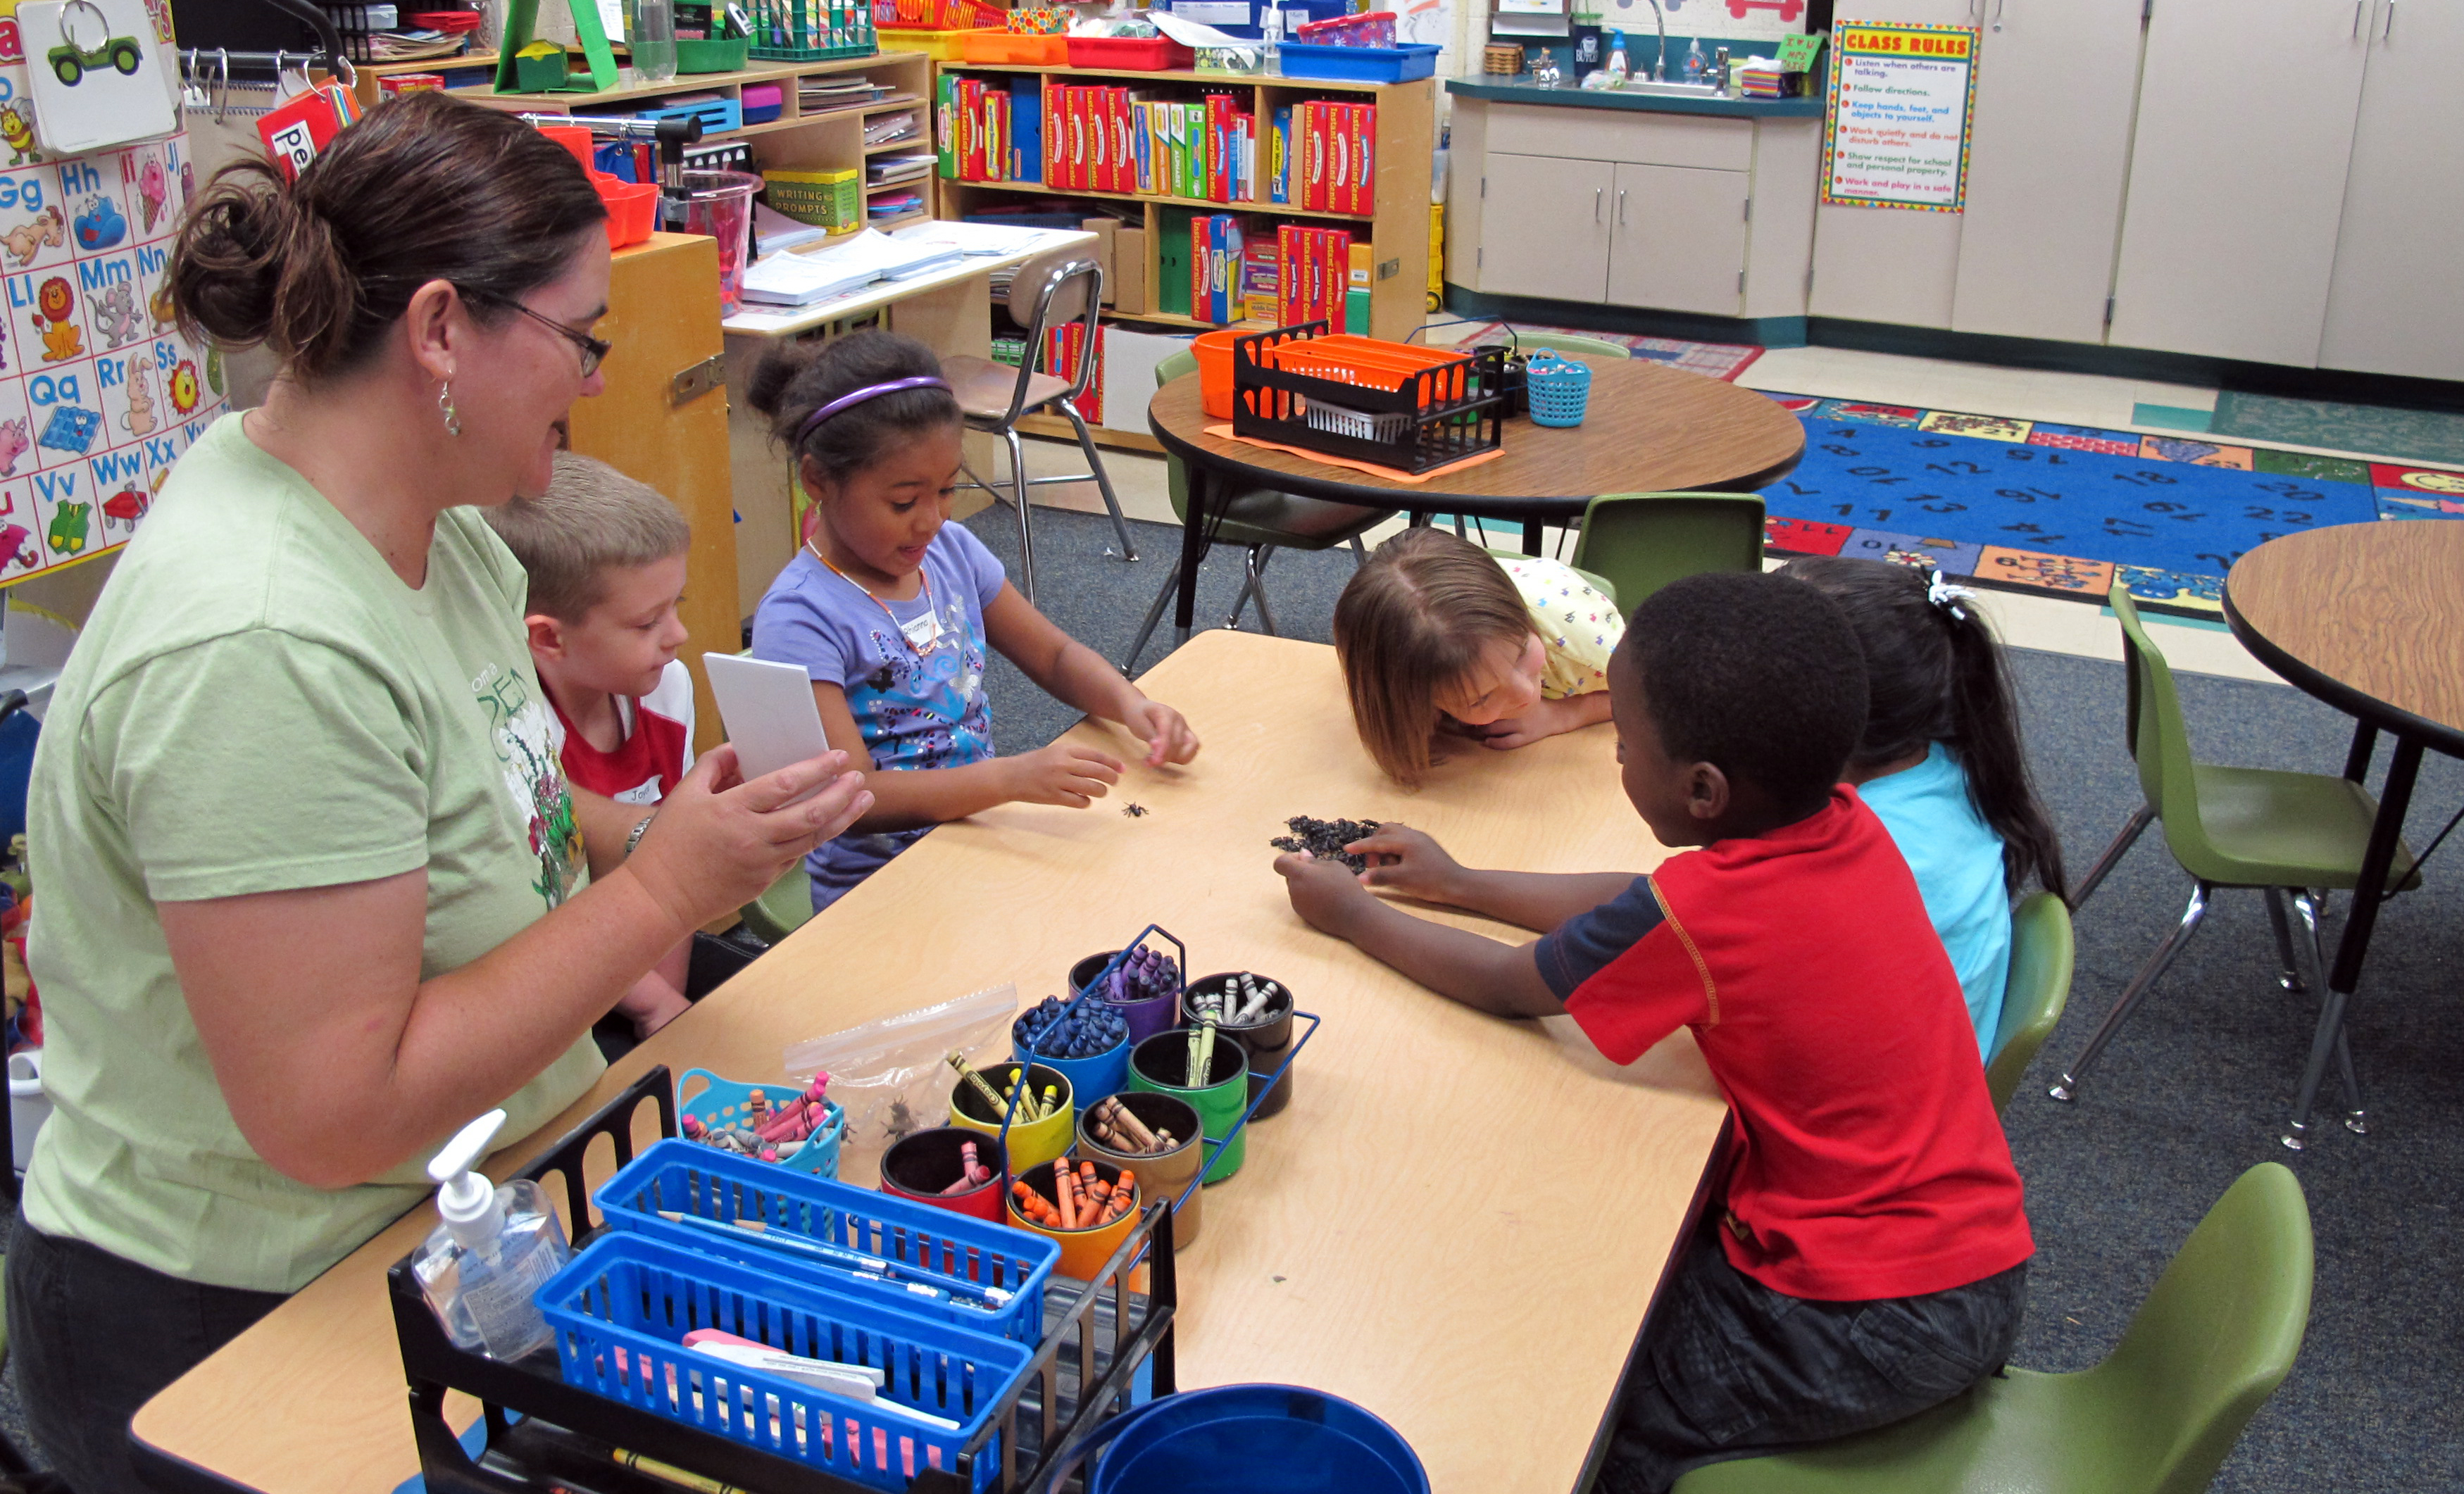 Kinder Garden: When Should Kids Start School? In Illinois, A Possible